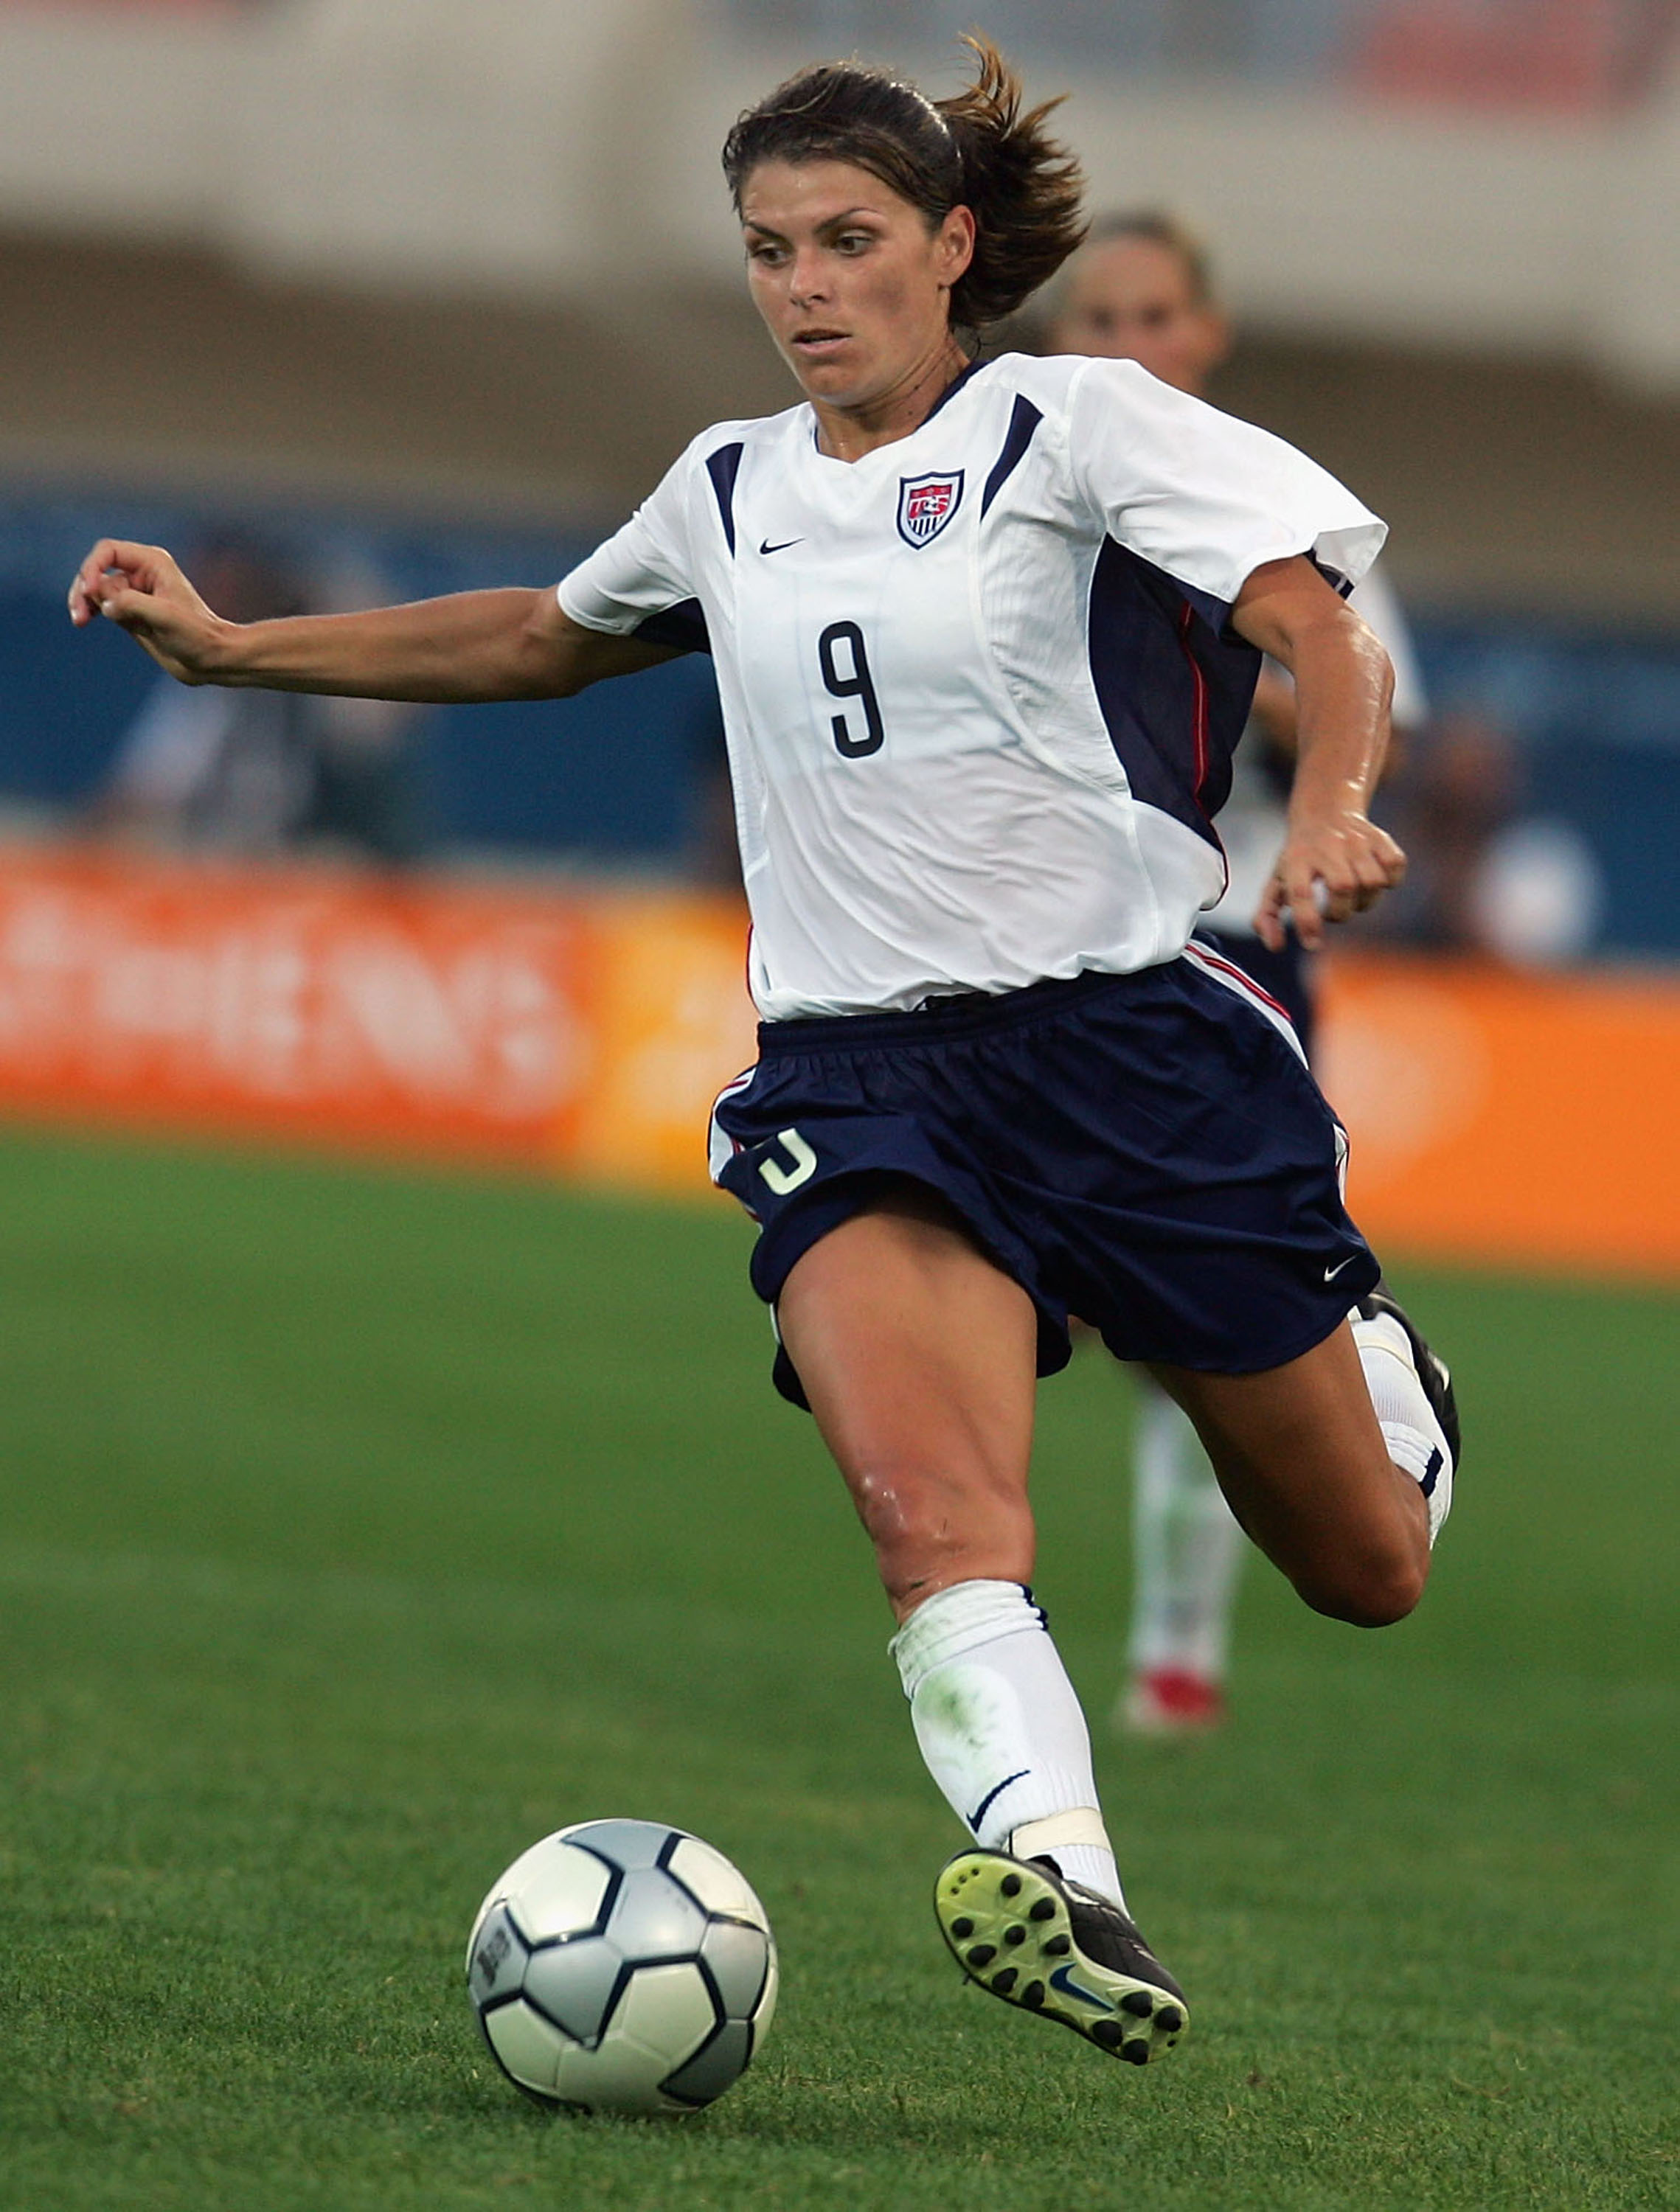 Mia Hamm #9 of the United States dribbles during the women's soccer semifinal match between USA and Germany on August 23, 2004 during the Athens 2004 Summer Olympic Games at Pankritio Stadium in Heraklio, Greece.